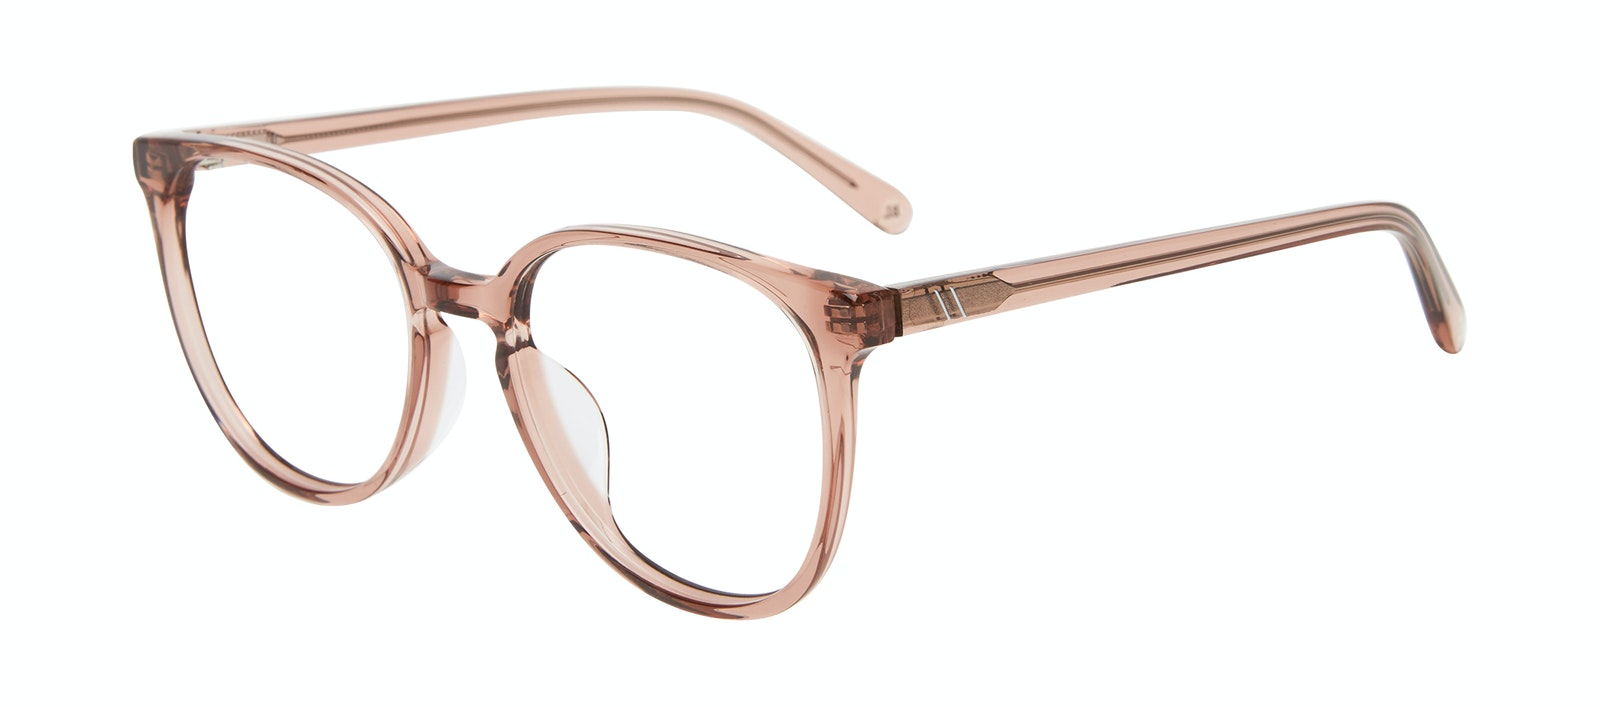 Affordable Fashion Glasses Round Eyeglasses Women Impression Rose Tilt